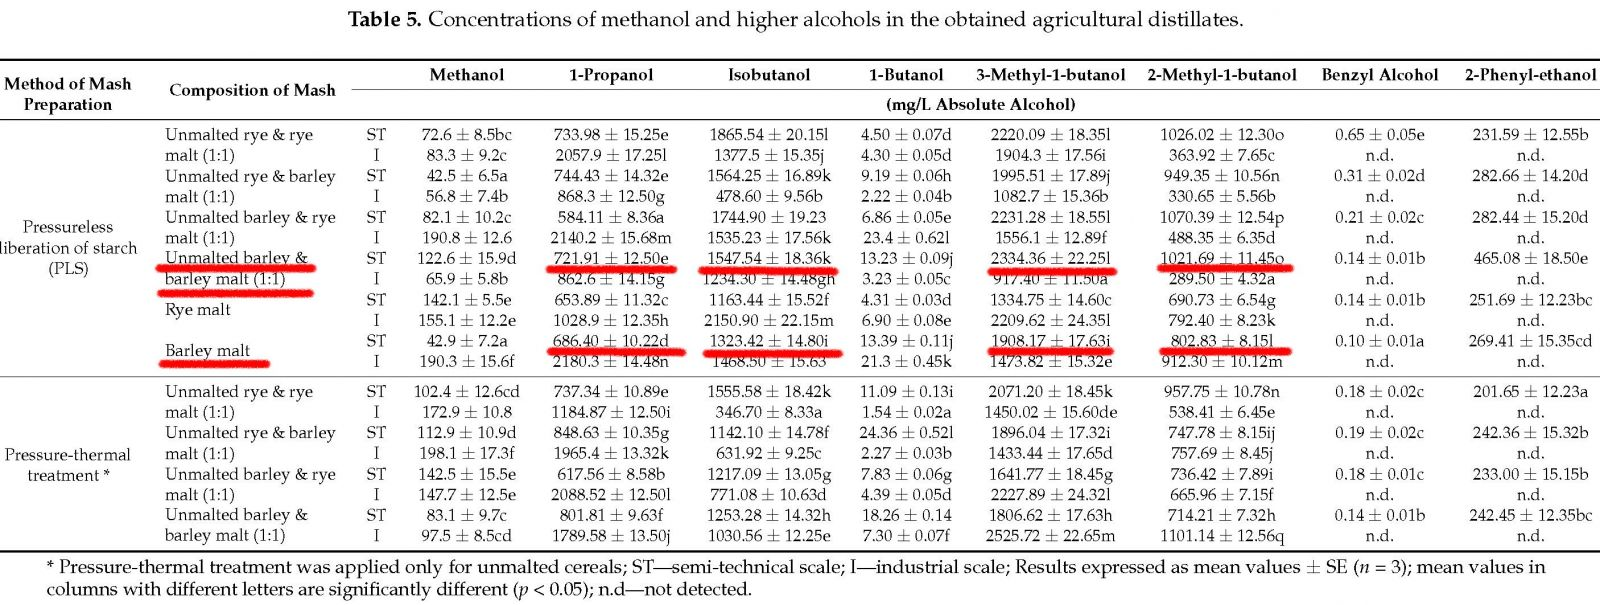 Chemical Composition Of Agricultural Distillates Obtained from Rye And Barley Grains And The Corresponding Malts